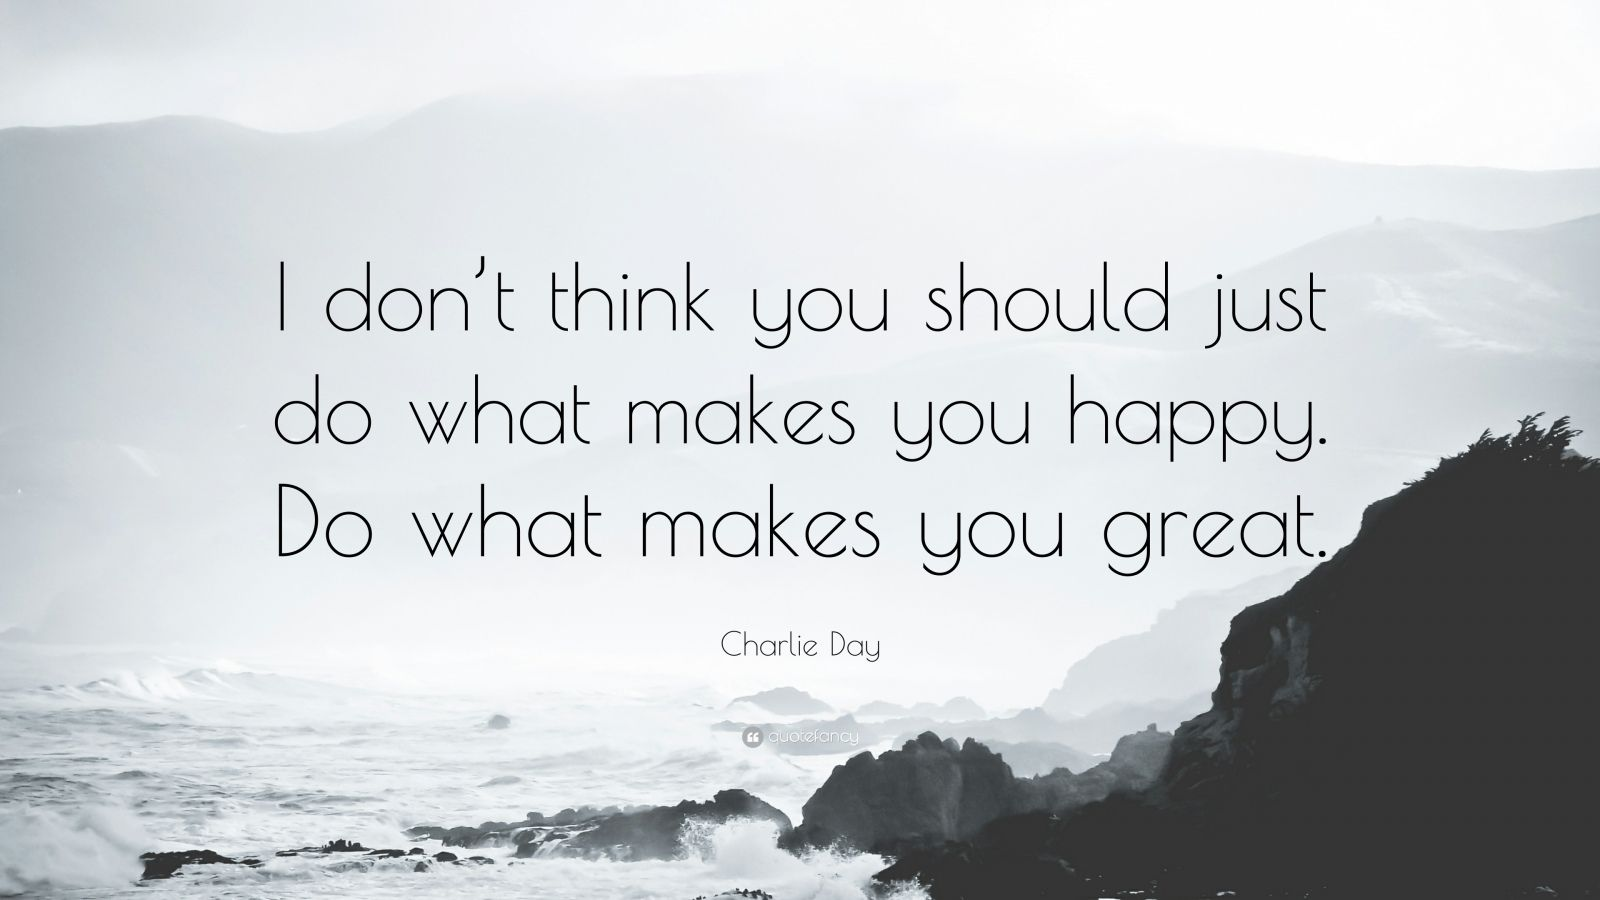 Steve Jobs Motivational Quotes Wallpaper Charlie Day Quote I Don T Think You Should Just Do What